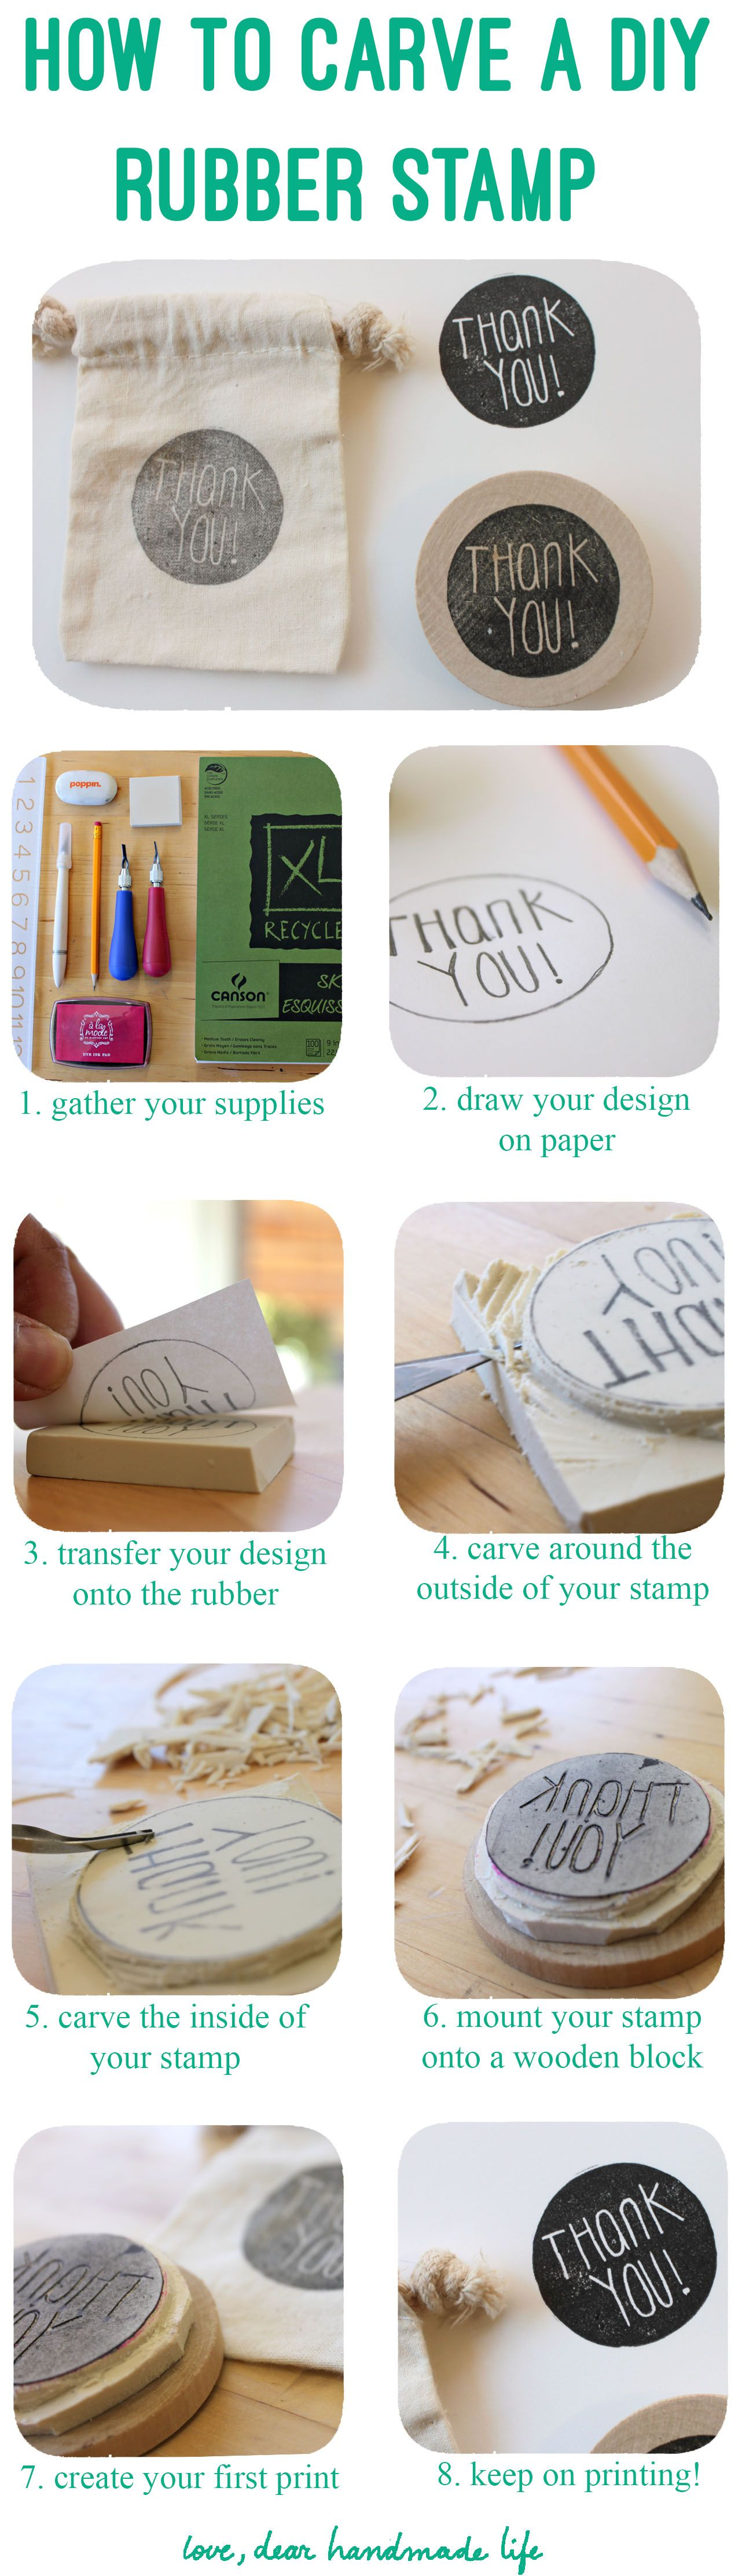 how to make a diy carved rubber stamp astuces pinterest tampon diy et faire. Black Bedroom Furniture Sets. Home Design Ideas